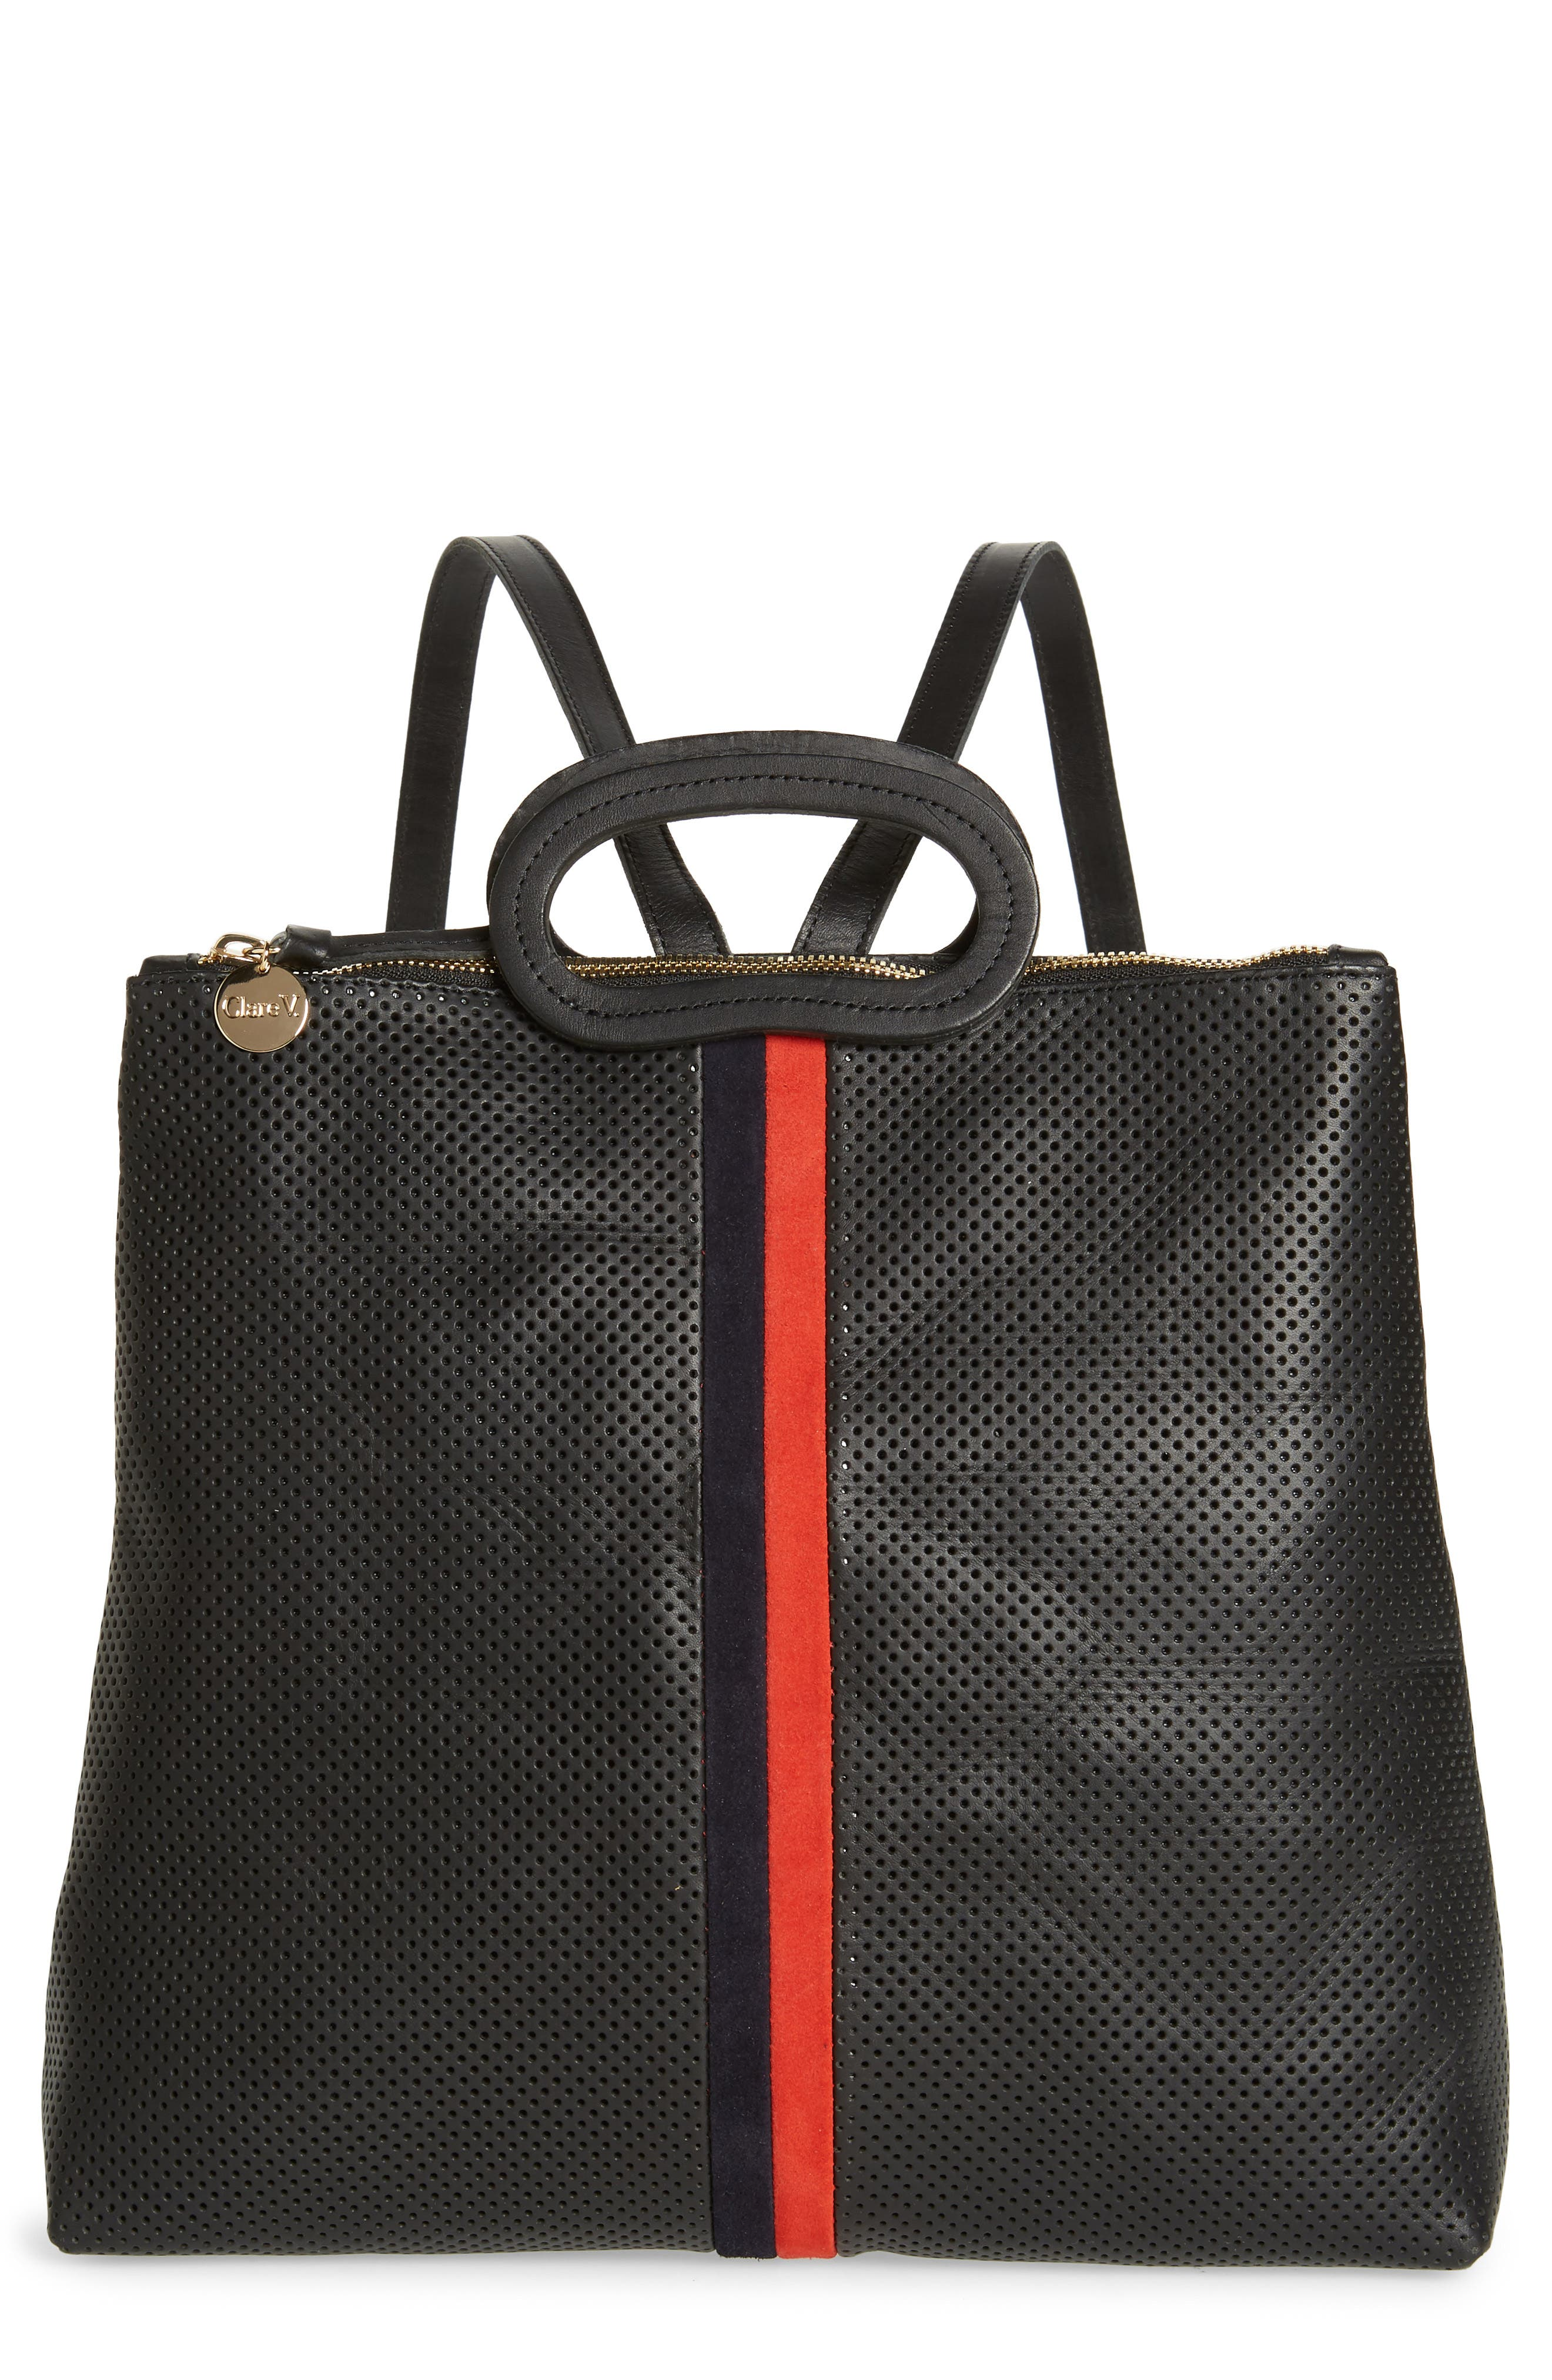 Marcelle Perforated Leather Backpack,                             Main thumbnail 1, color,                             BLACK PERF WITH NAVY/ RED